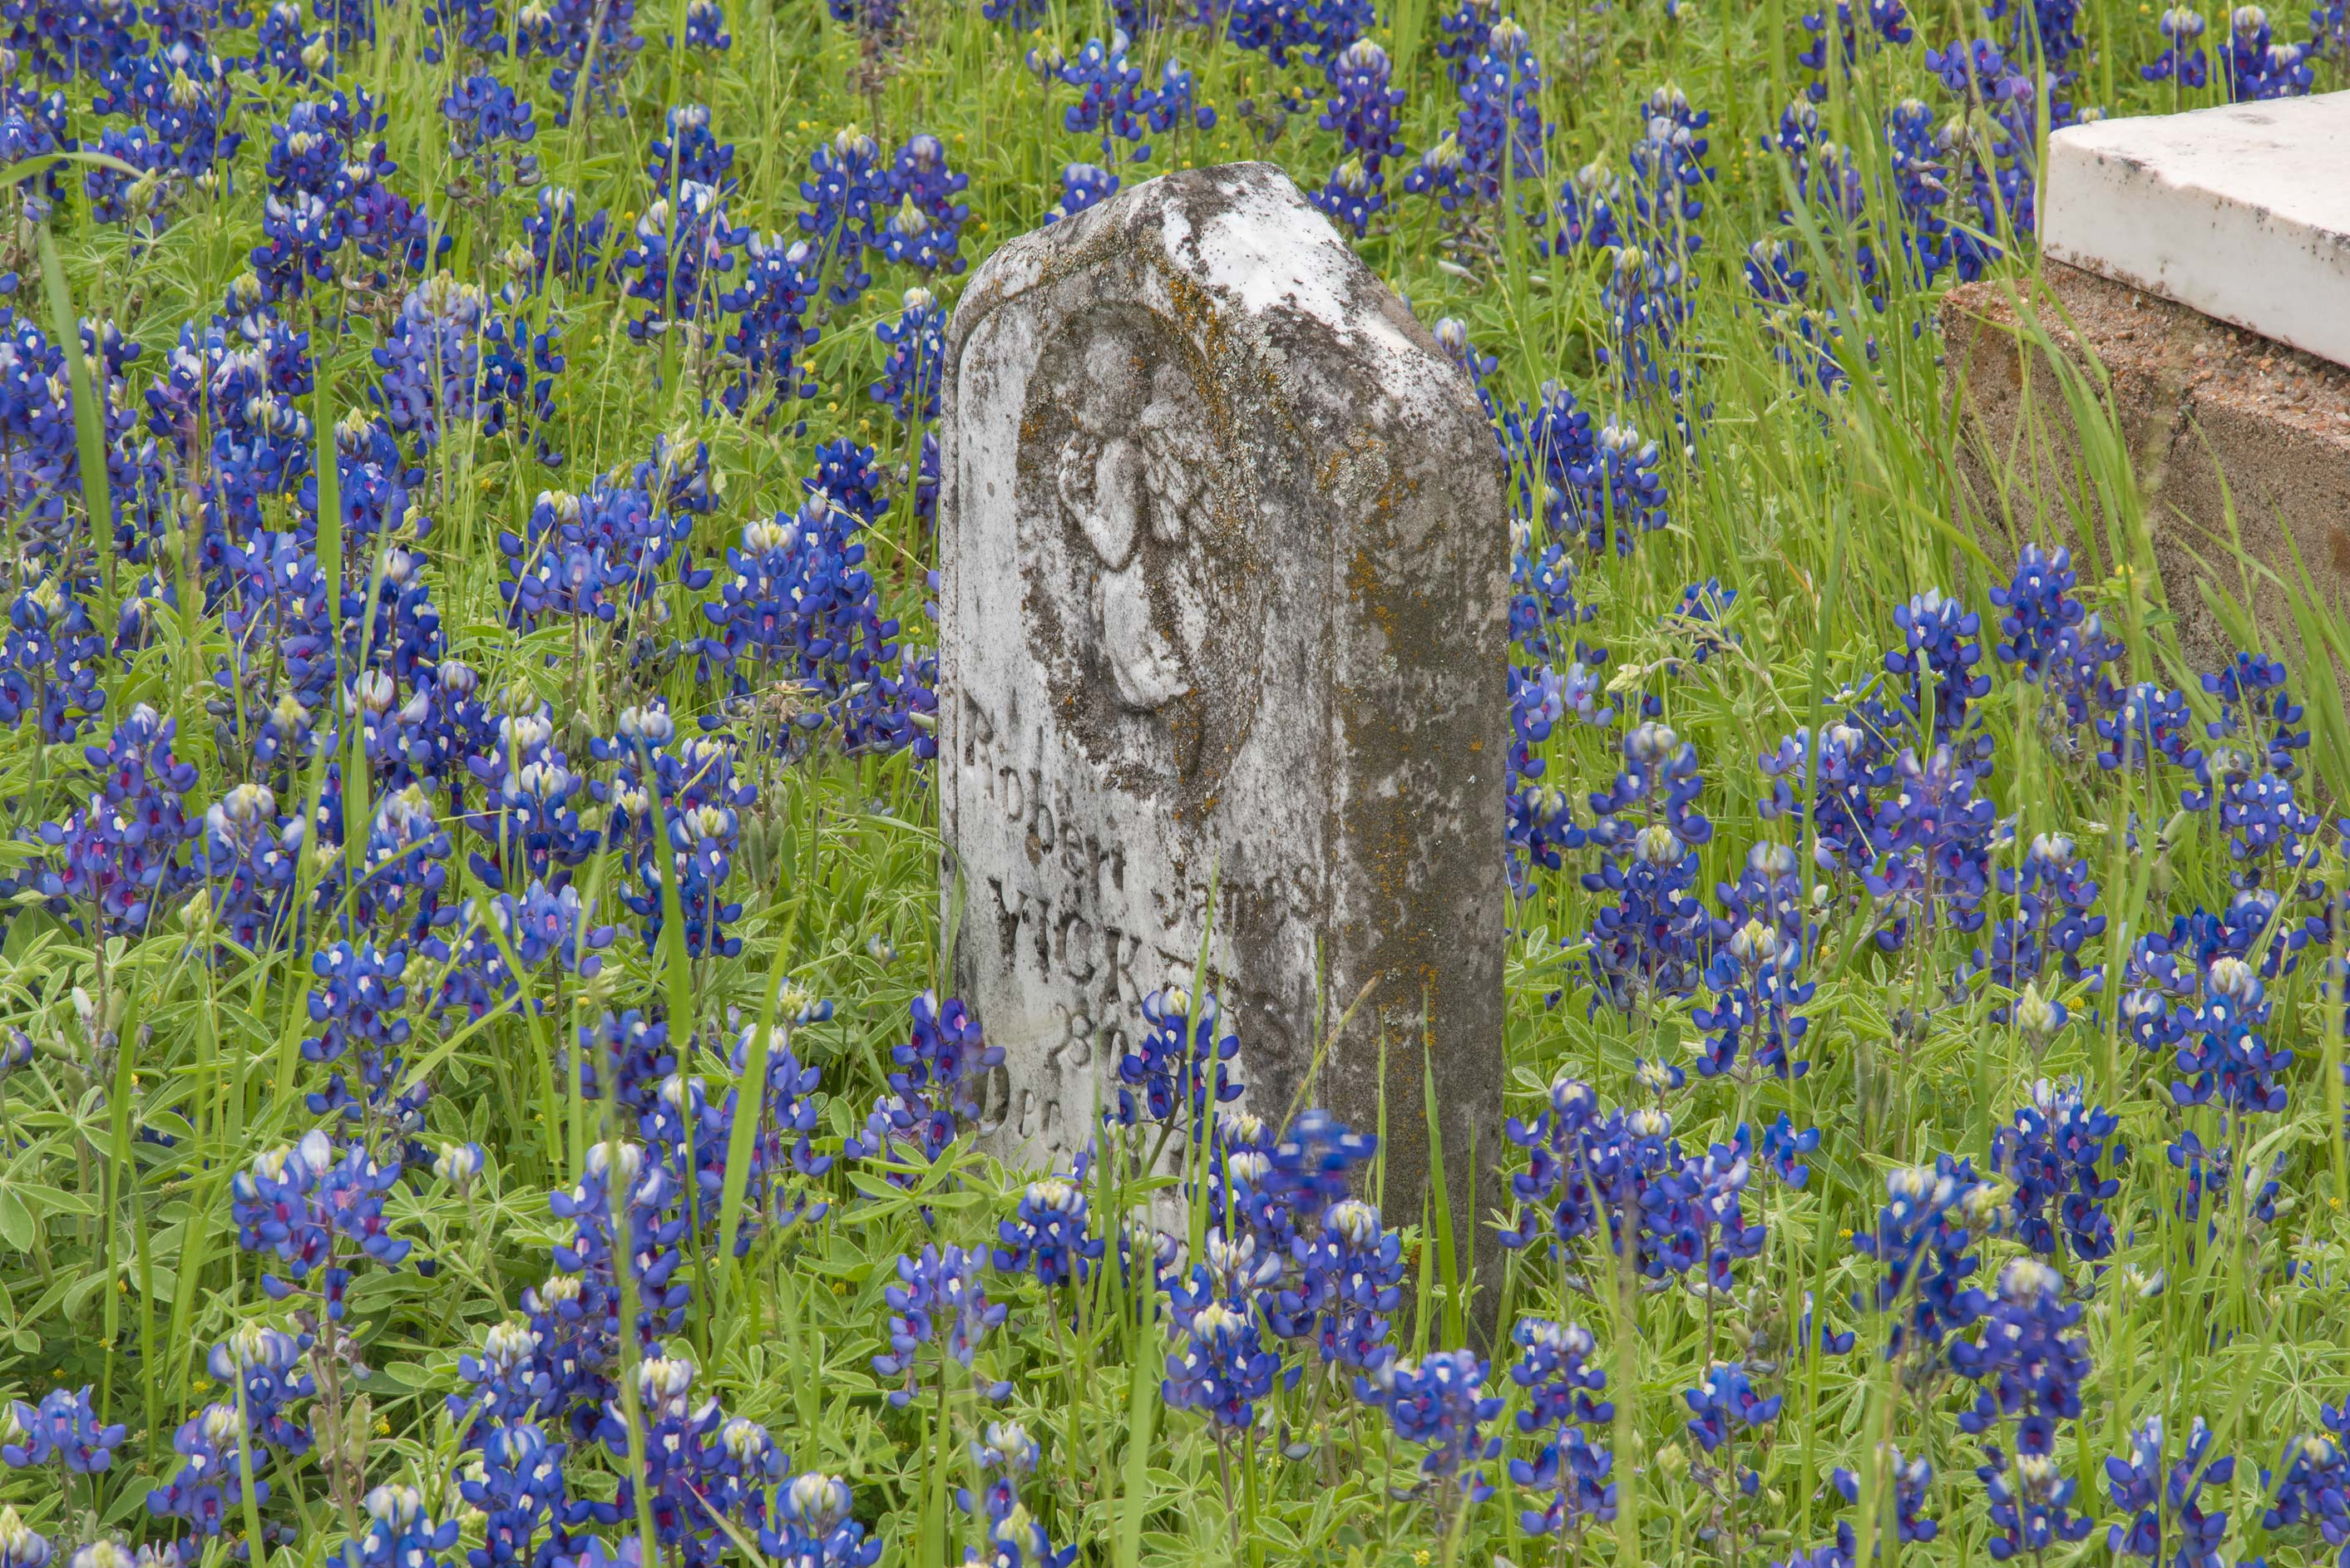 Children's tomb with bluebonnets in Historic...Cemetery near Independence. Texas